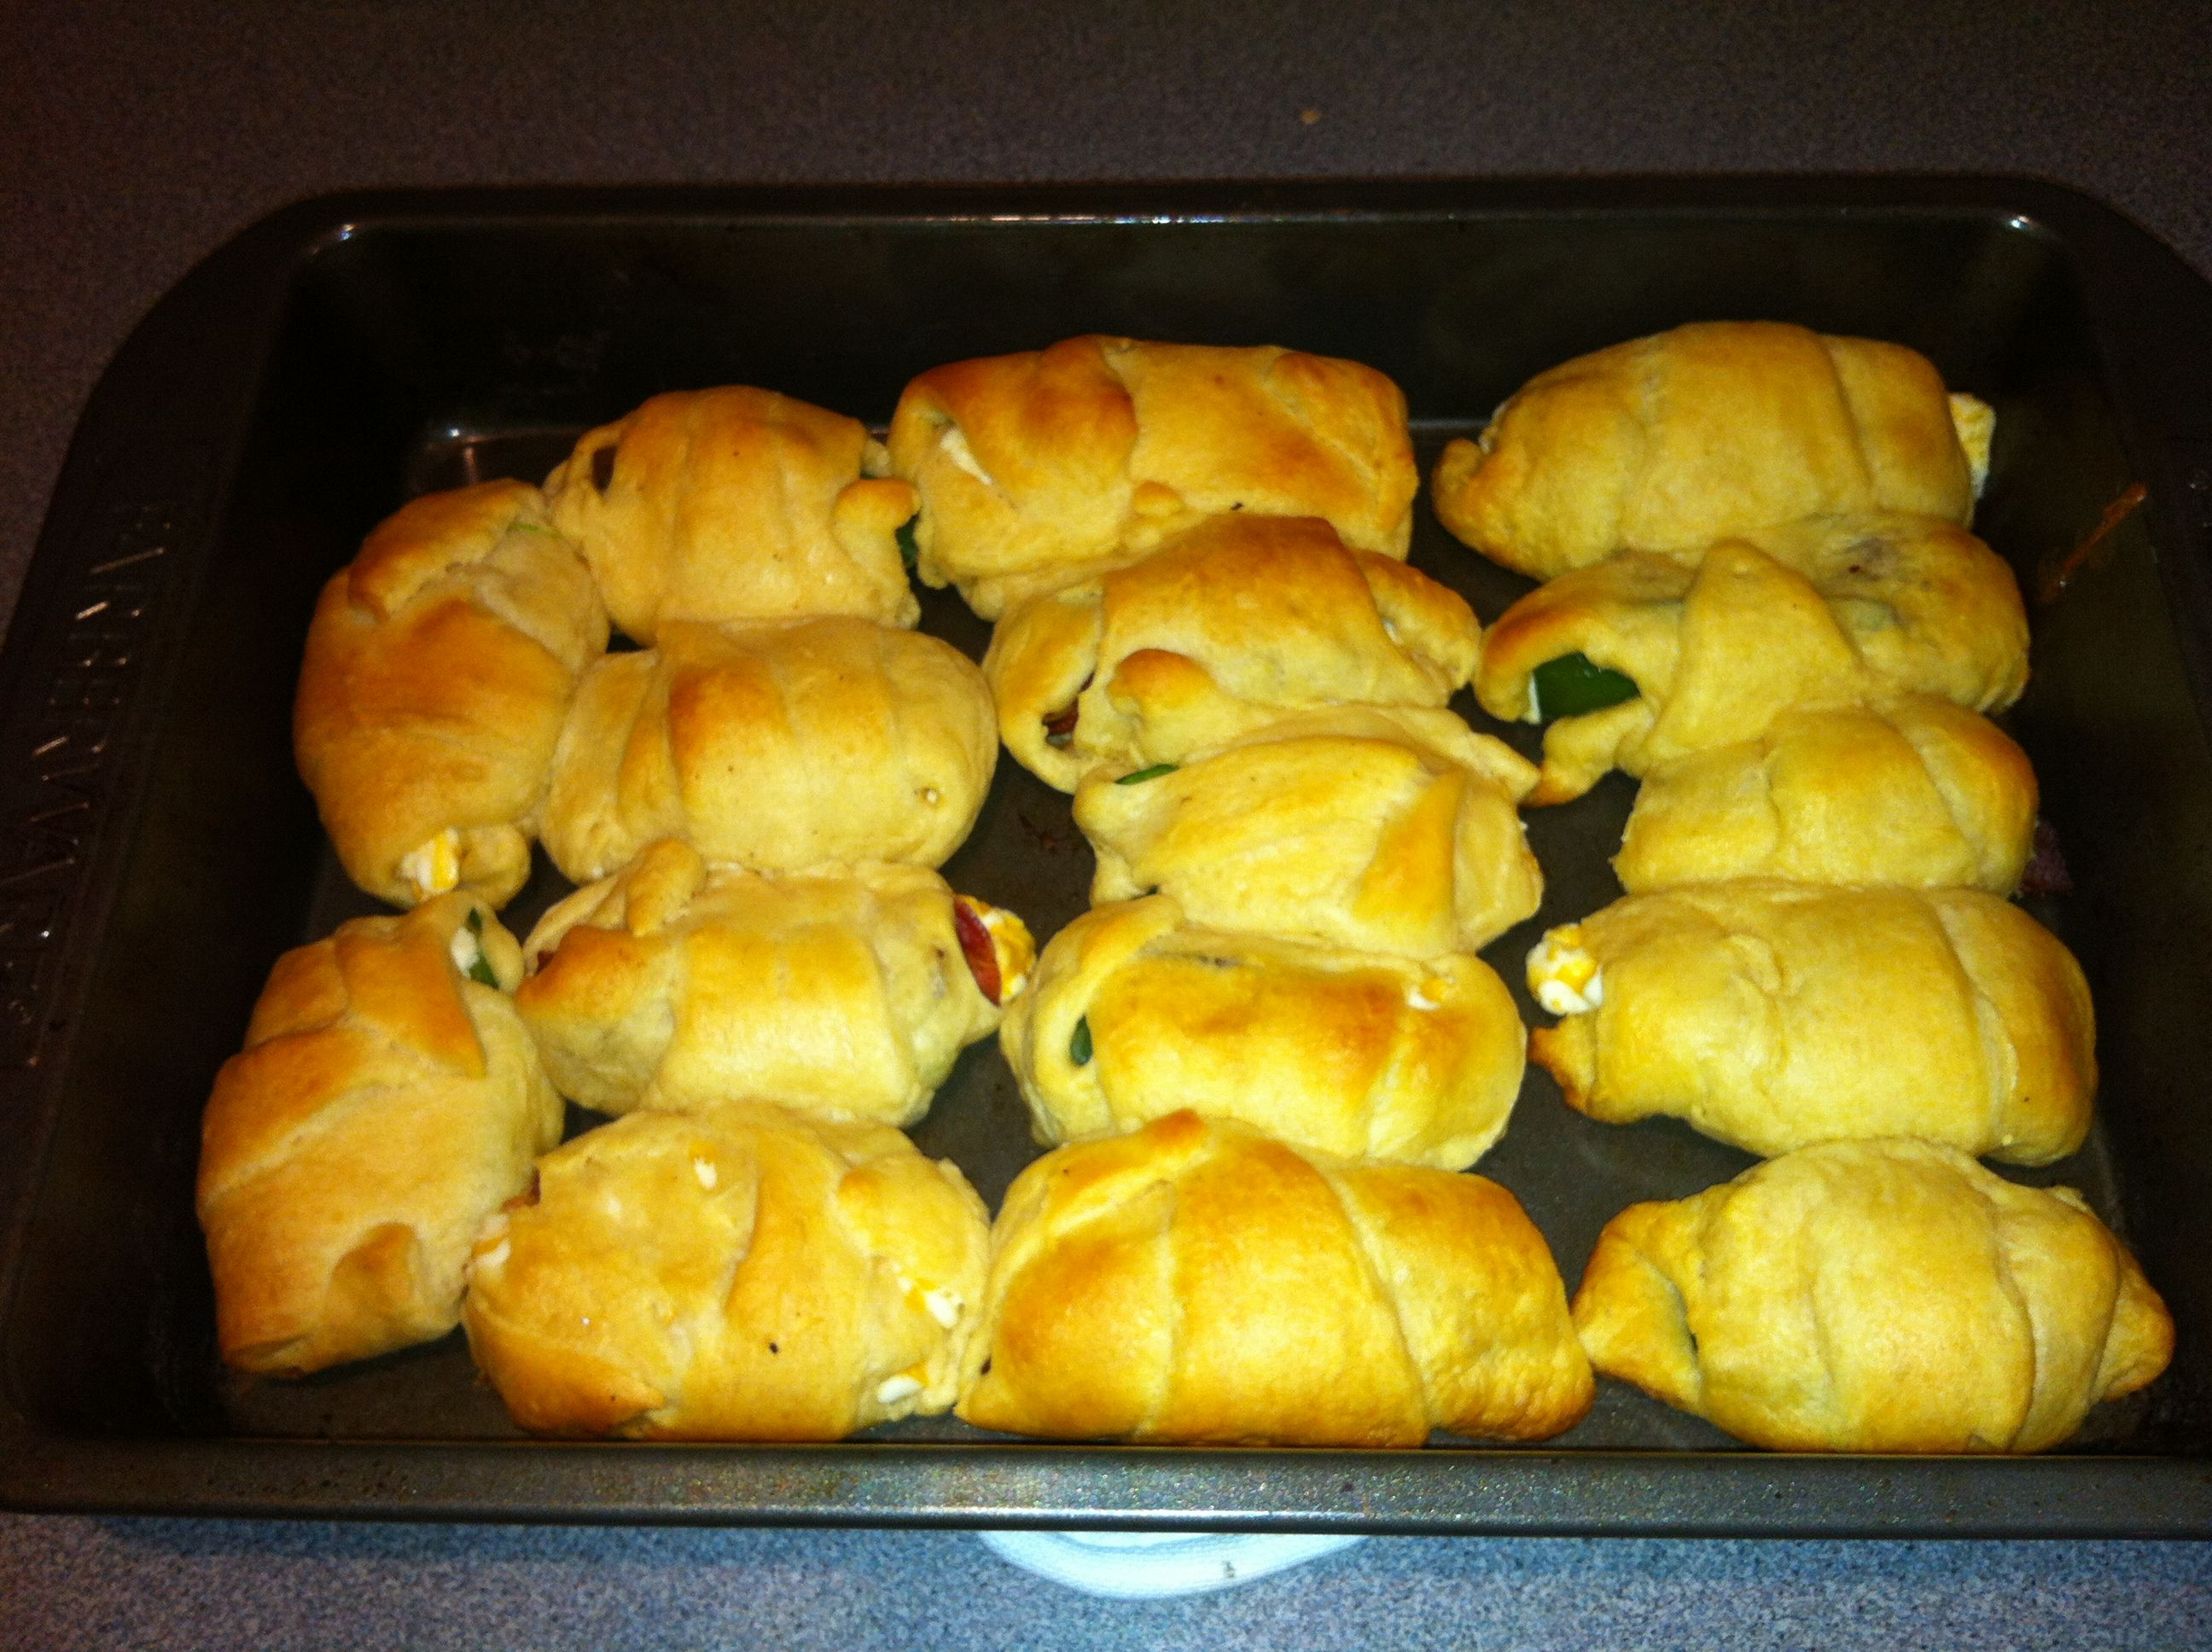 Baked Jalepeno Poppers Wrapped In Crescent Rolls Cream Cheese, Cheddar  Cheese, Jalepenos Sliced